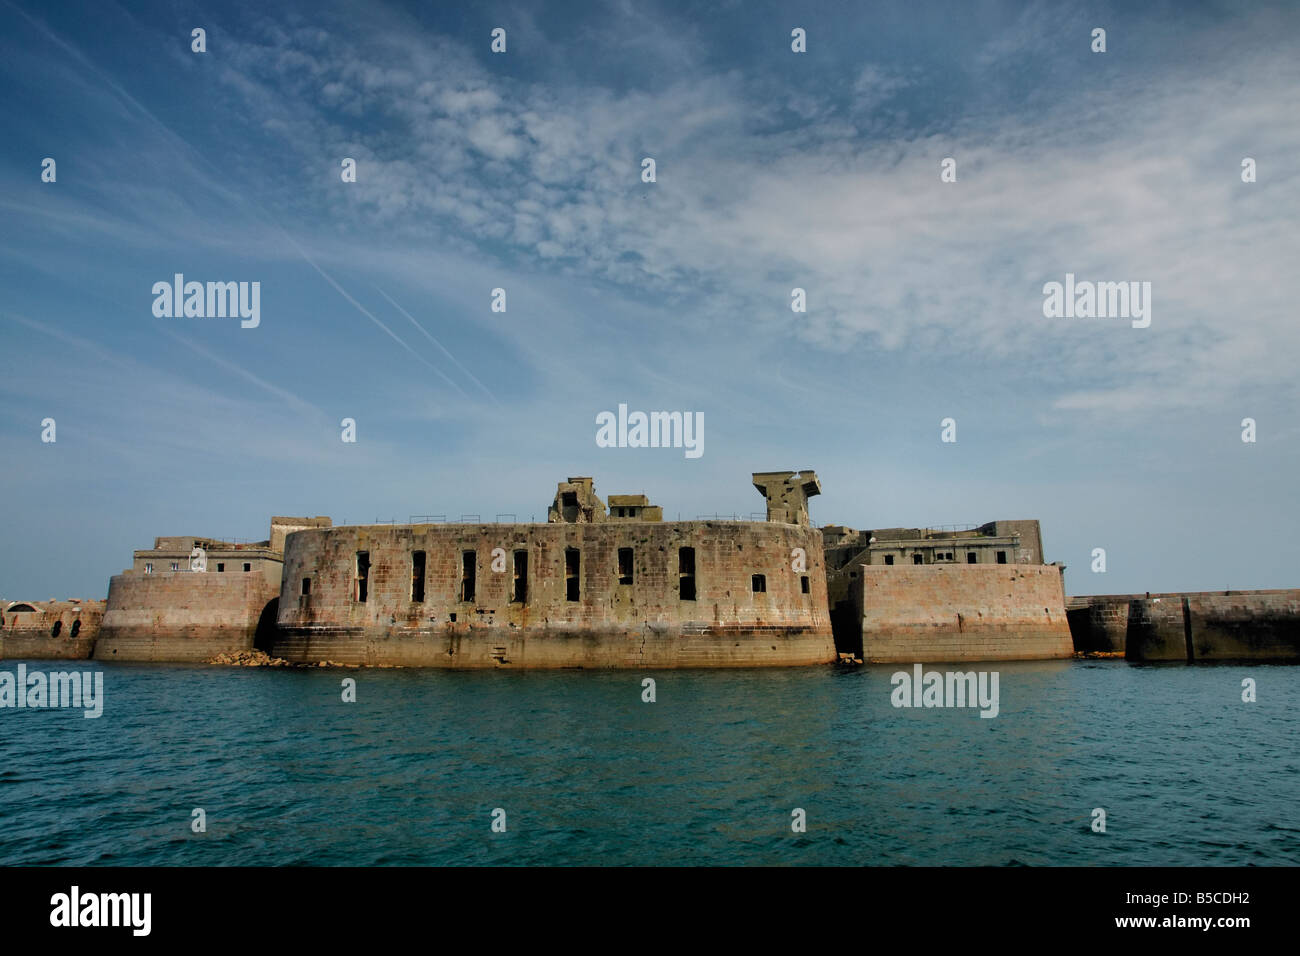 An ancient breakwater and fort, including German add-ons from WWII, in the Cherbourg port, france - Stock Image